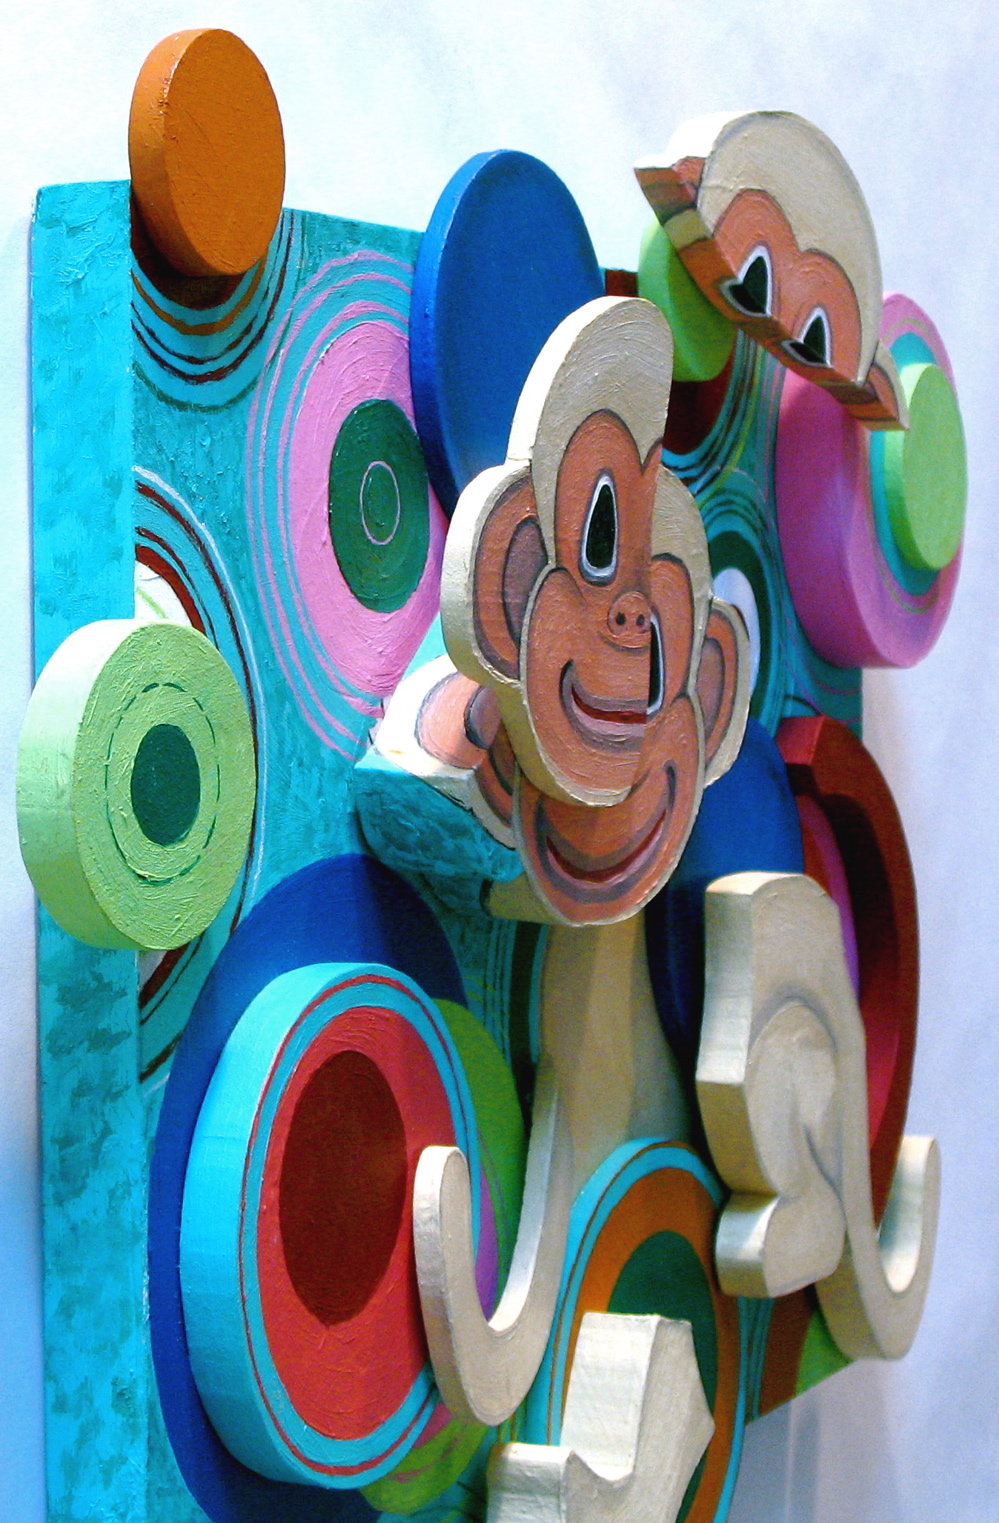 Small Monkey Excerpt [Detail]